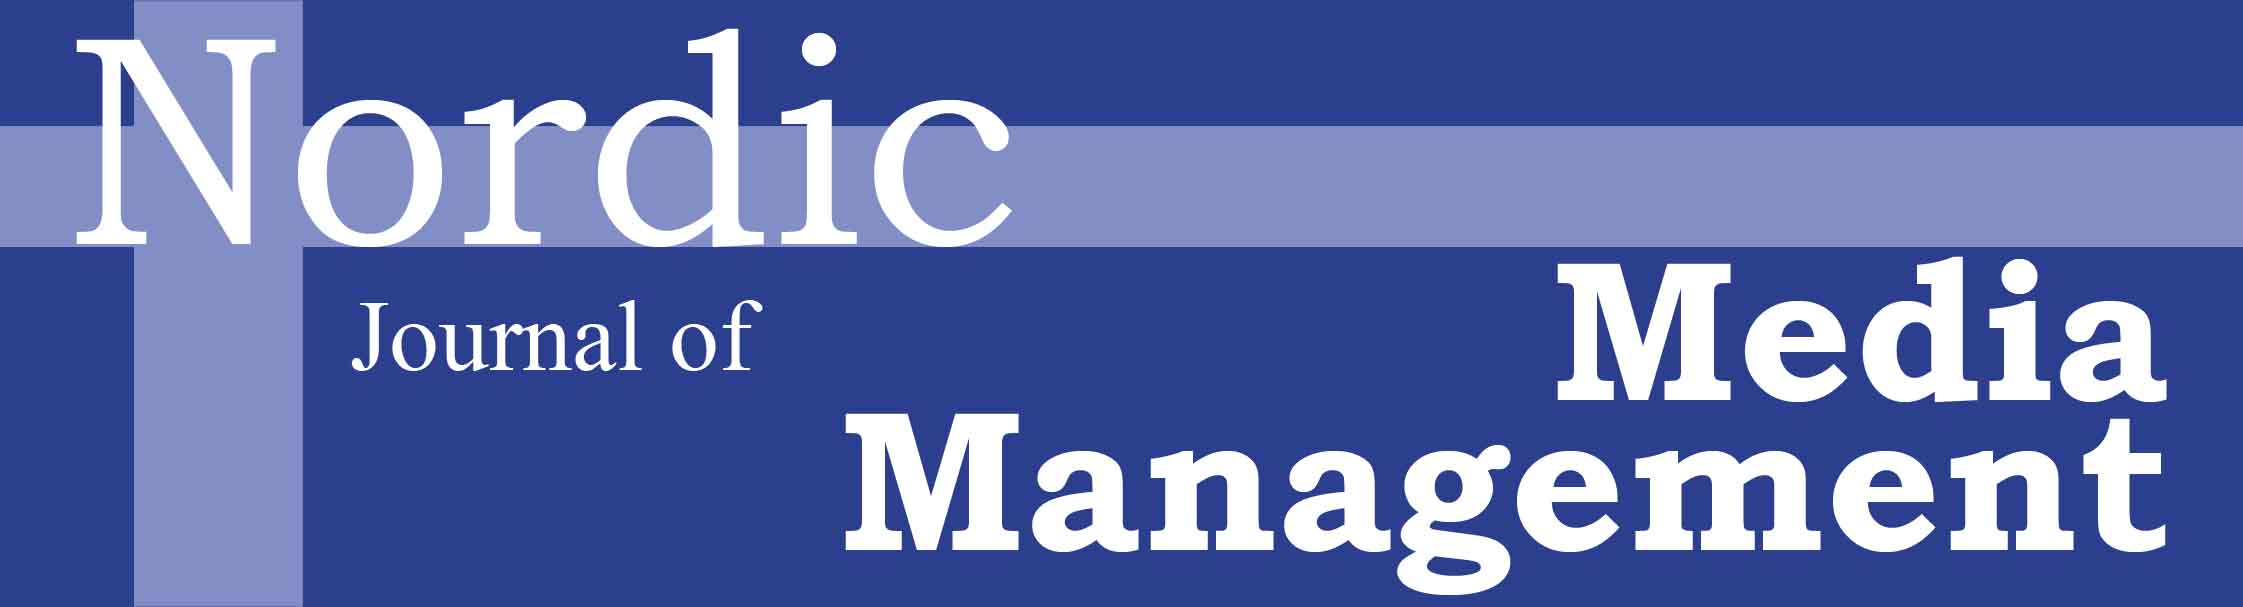 Nordic Journal of Media Management